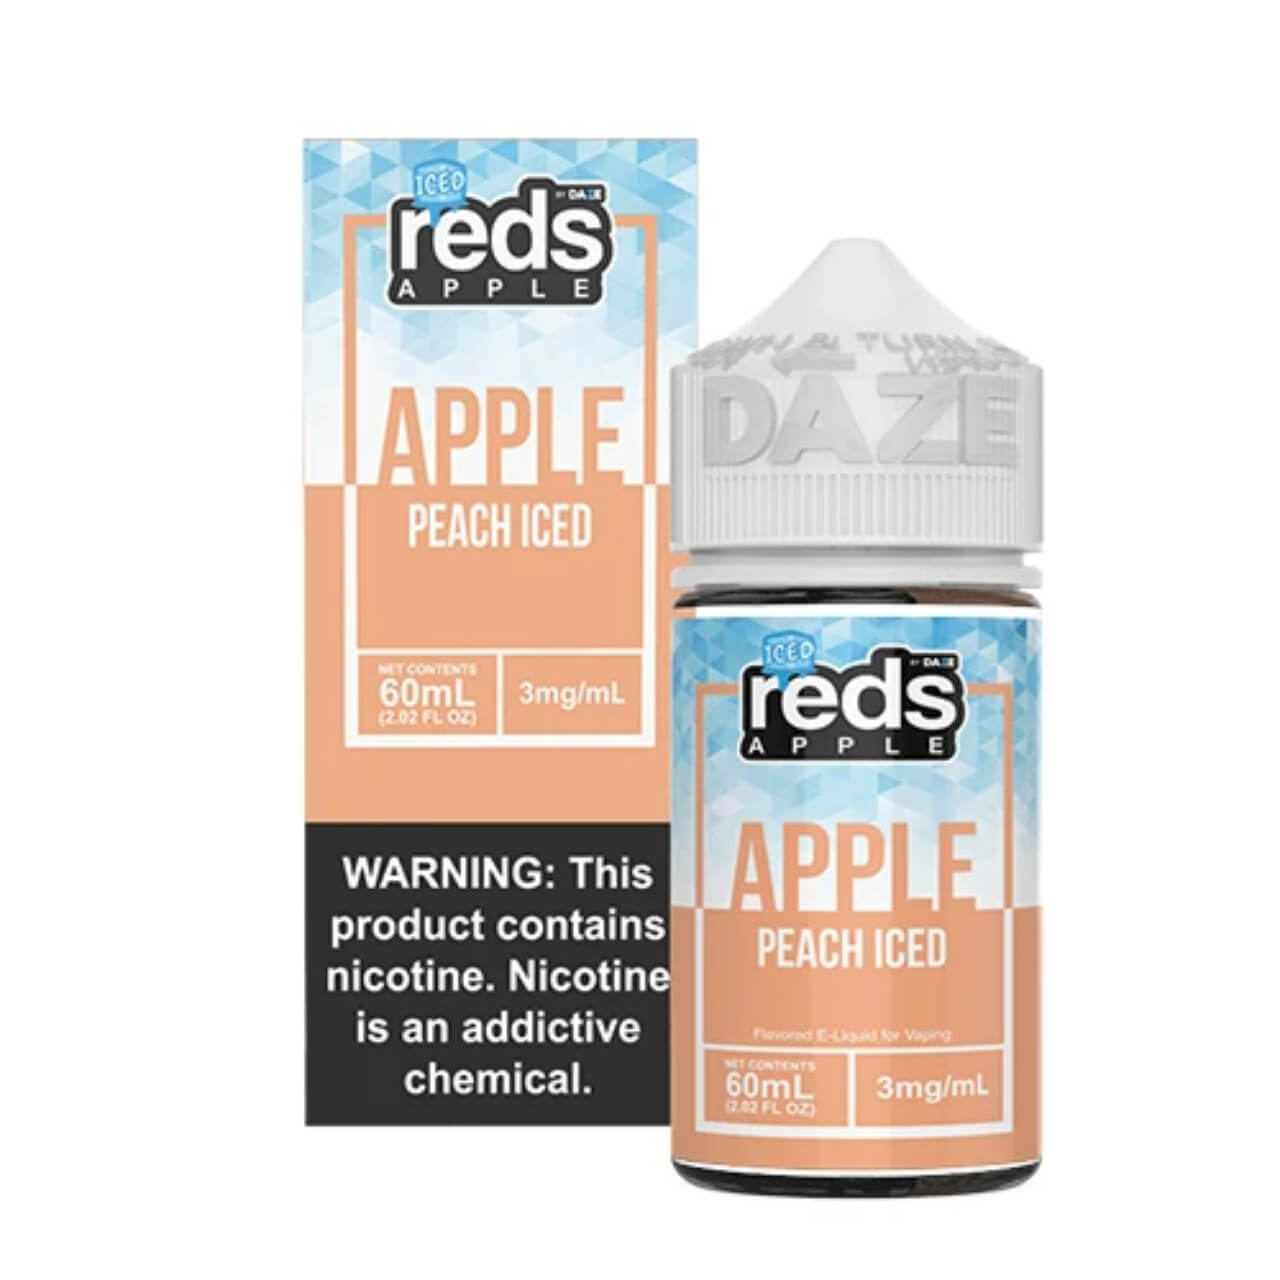 Red's Apple Peach Iced 60ml eJuice Wholesale | Red's Apple Wholesale